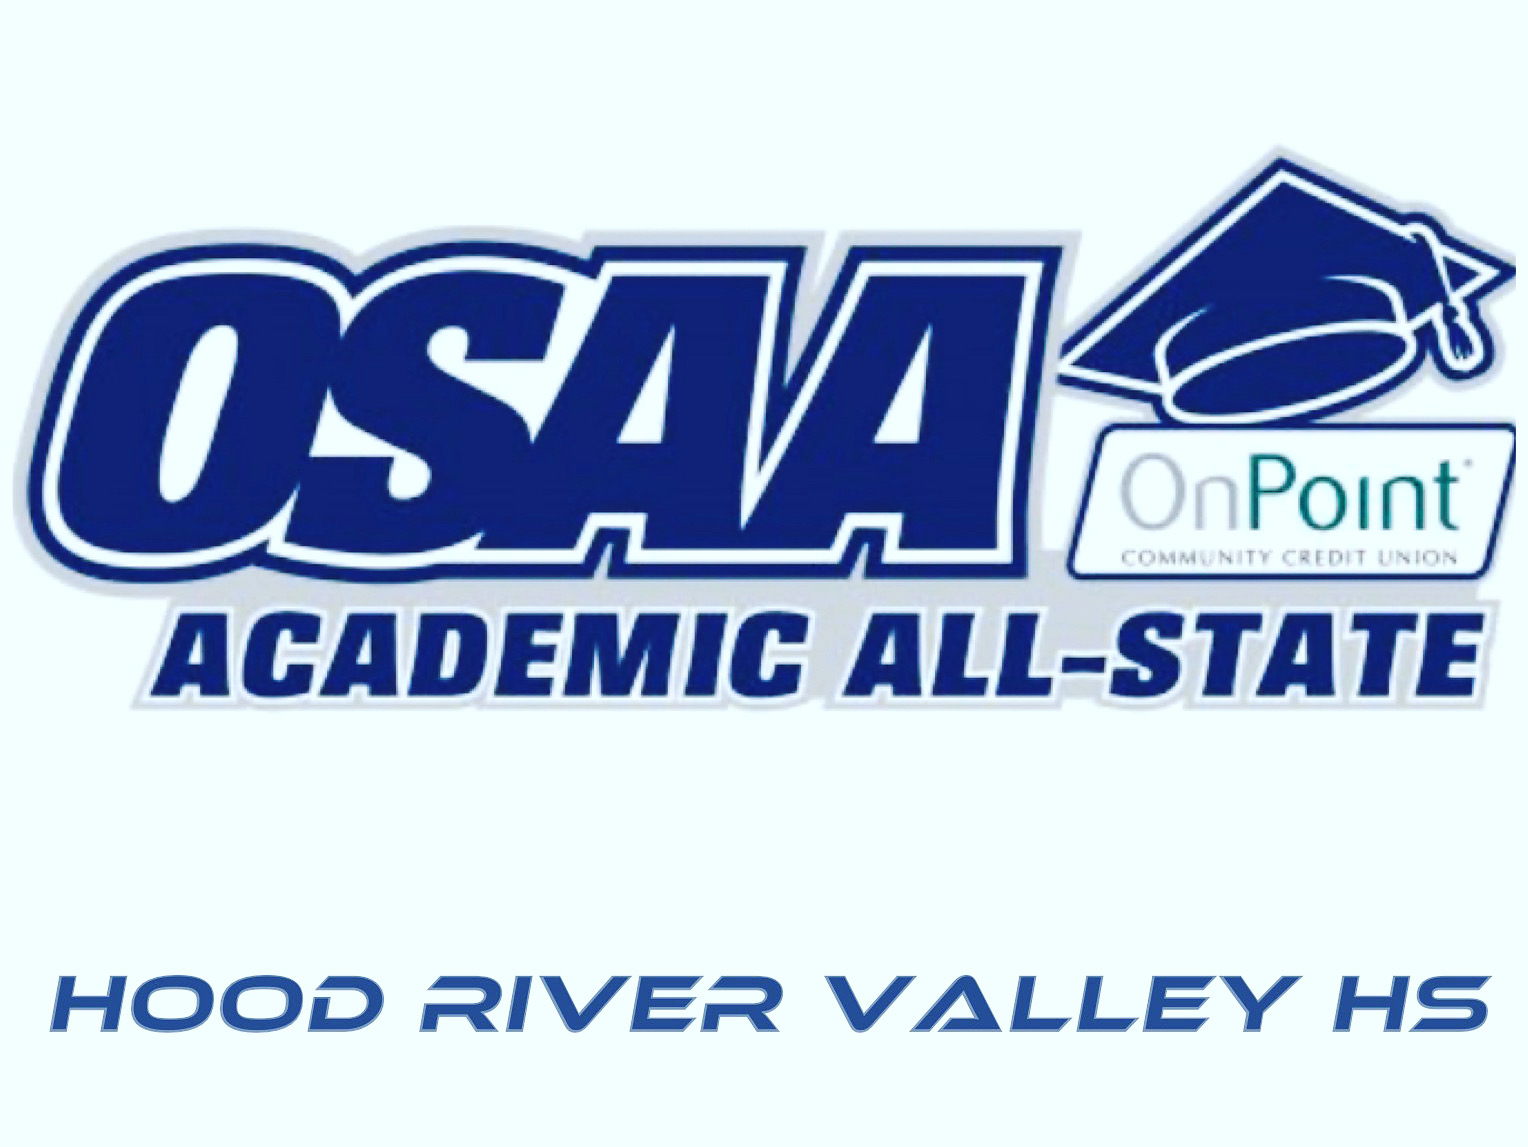 HRVHS ATHLETICS – OSAA ACADEMIC ALL-STATE ANNOUNCED